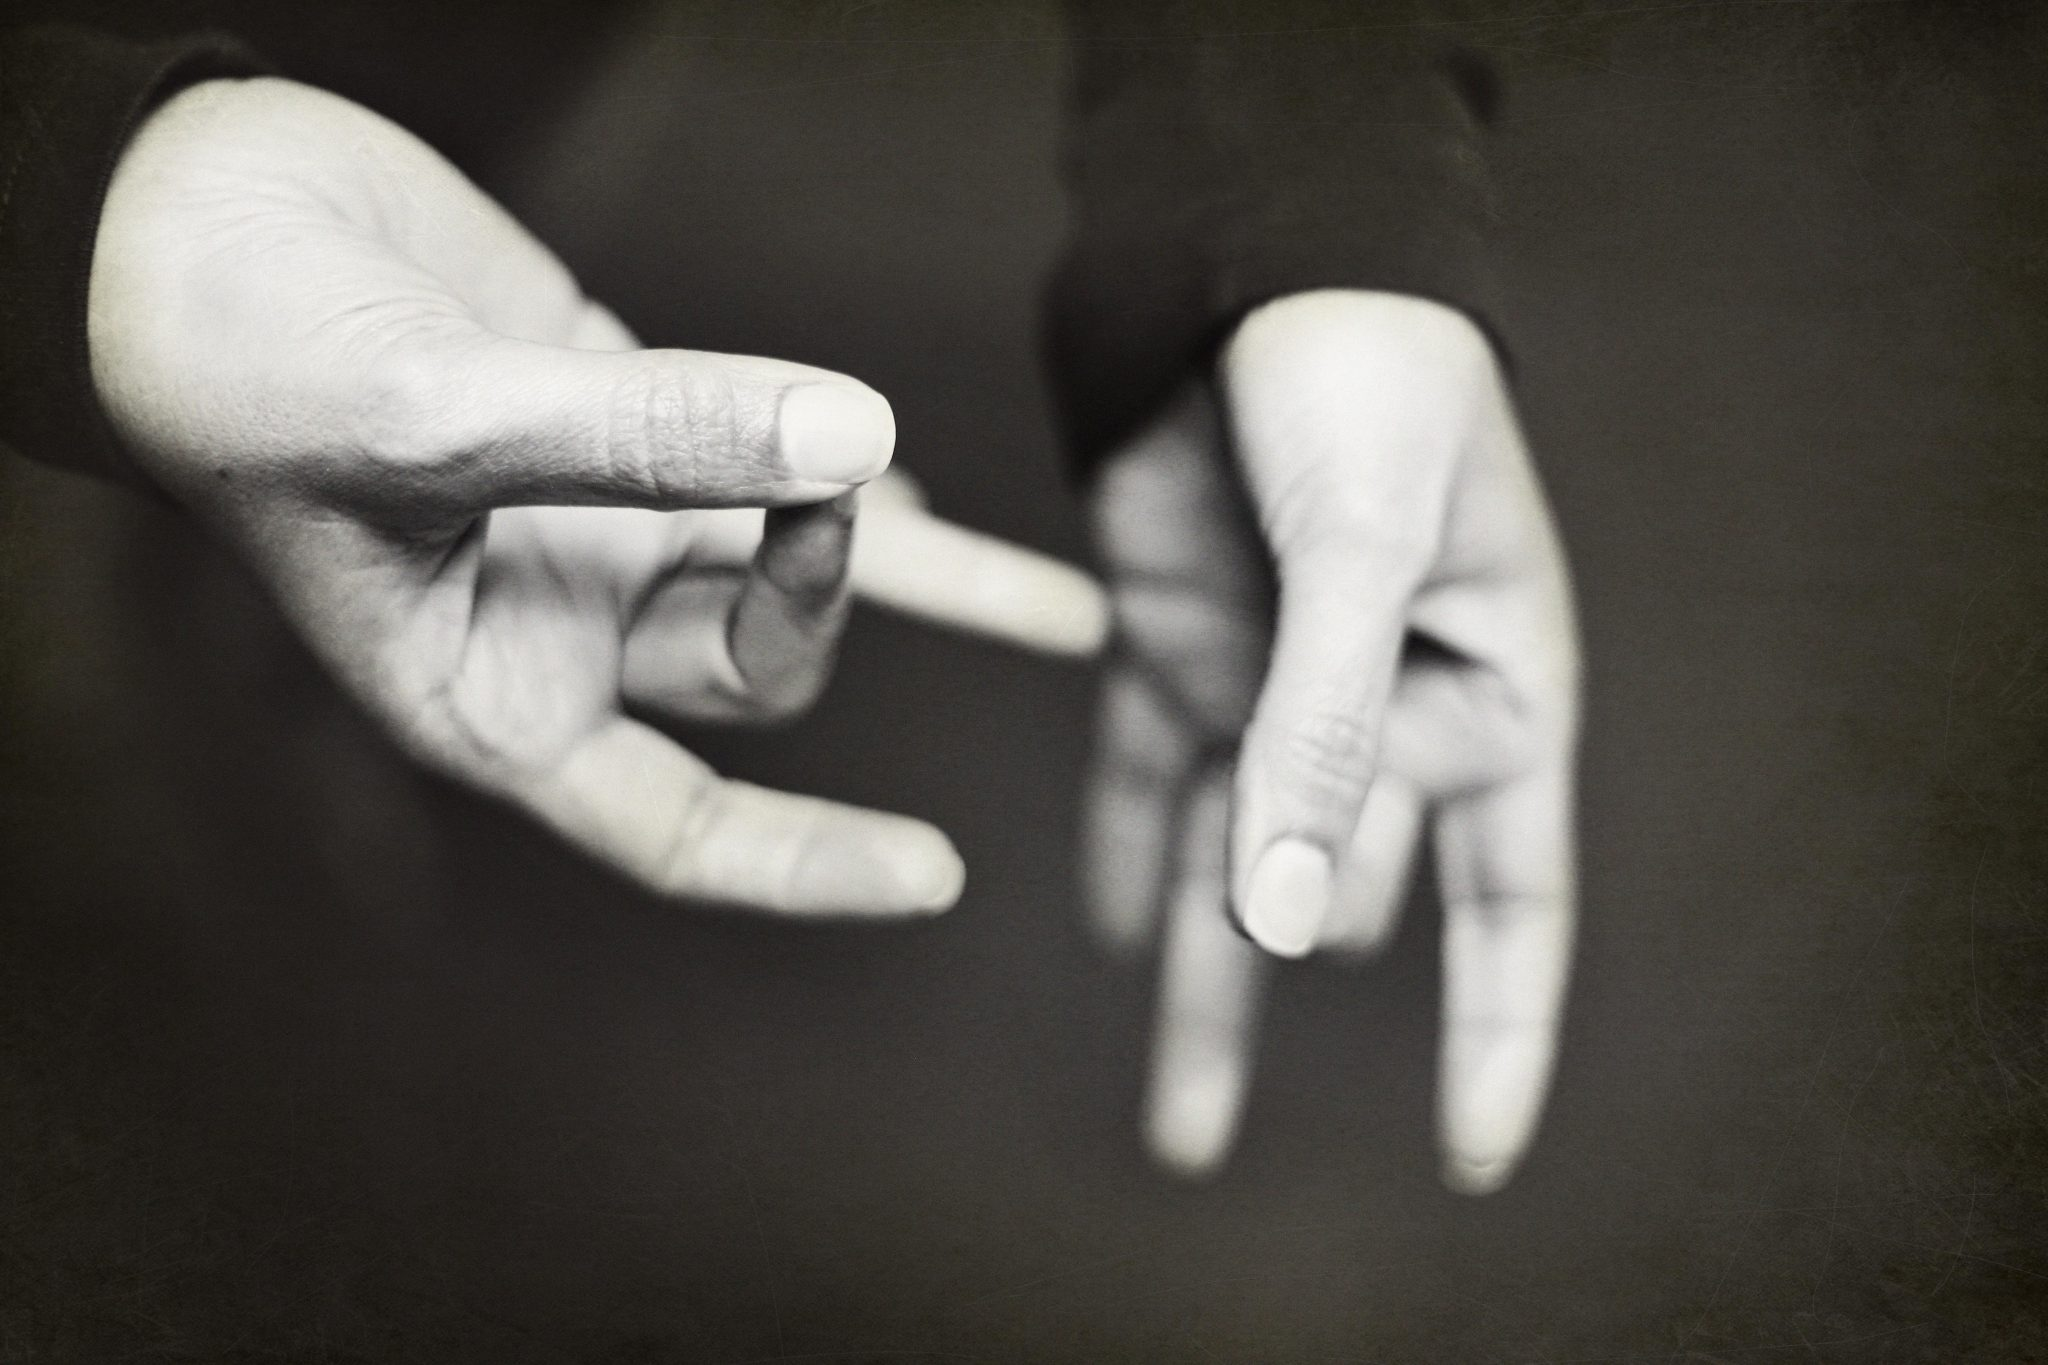 Black and white photo of hands signing